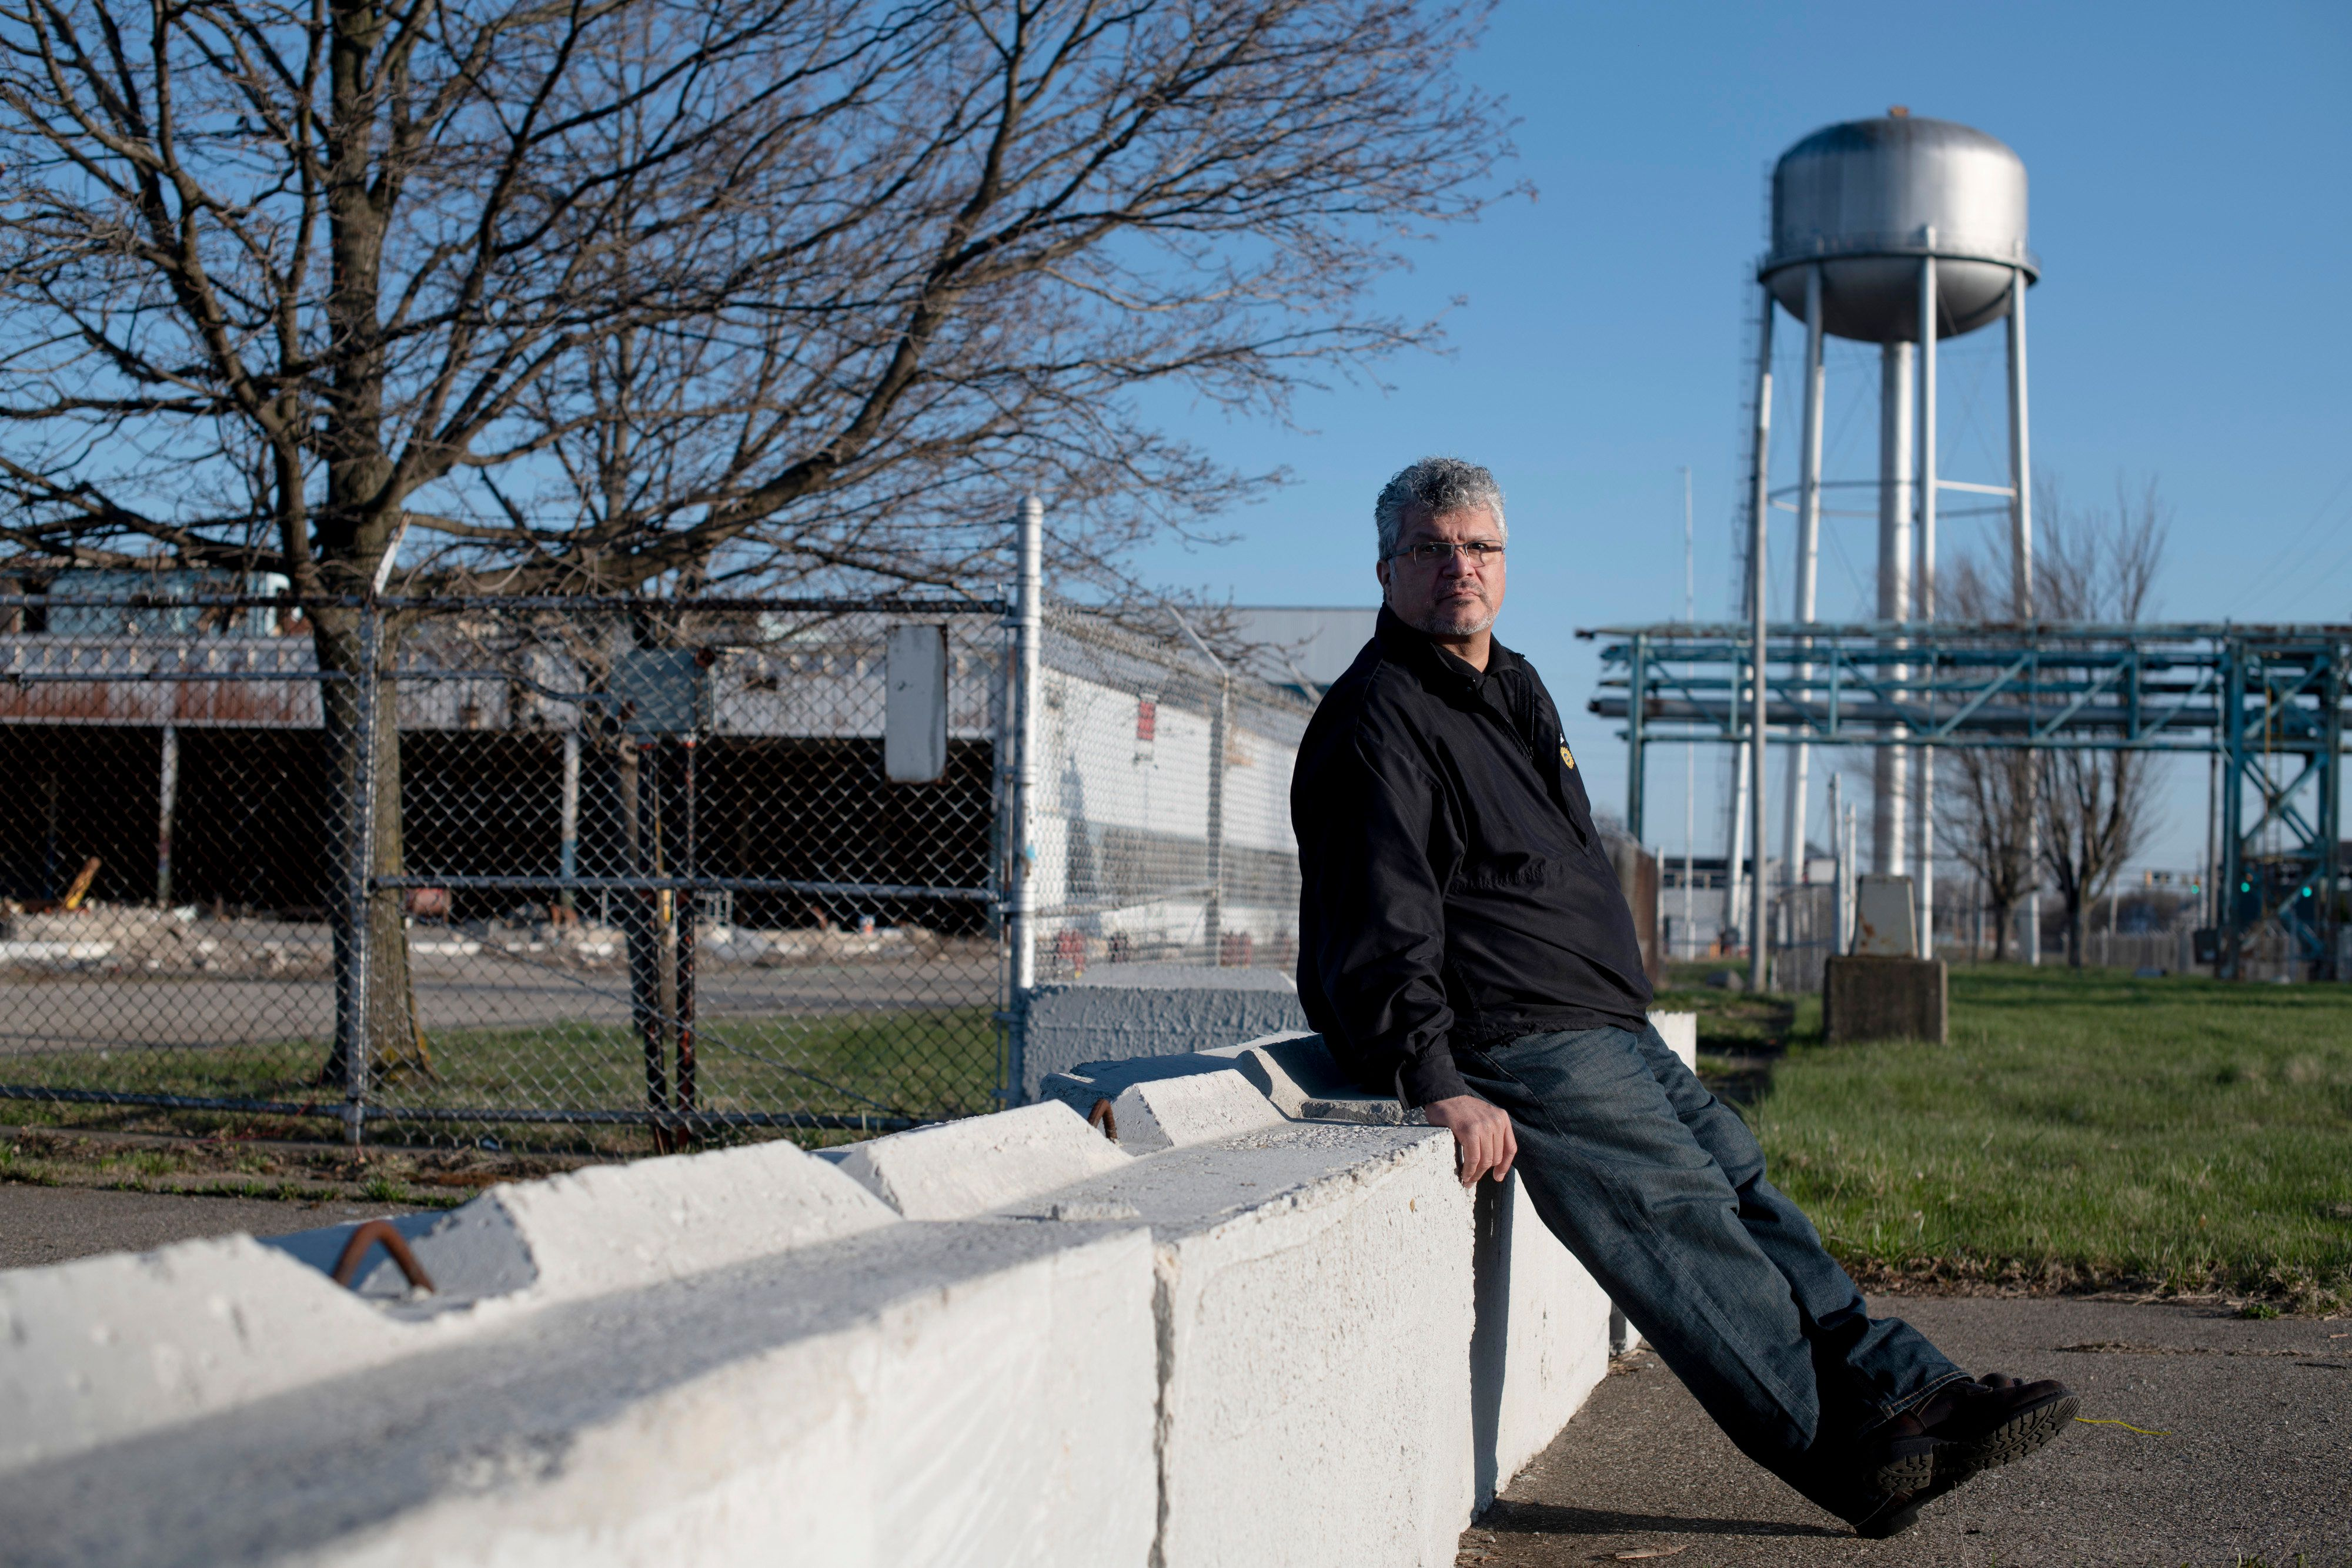 Art Reyes, an electrician at the GM Flint Assembly Plant and former president of UAW Local 651, poses on Sunday, April 29, 2018 in front of the Delphi Flint East, former AC Spark Plug building in Flint, Mich. Reyes worked in the AC Spark Plug facility for 25 years before moving to work with GM. Rachel Woolf for Huffington Post